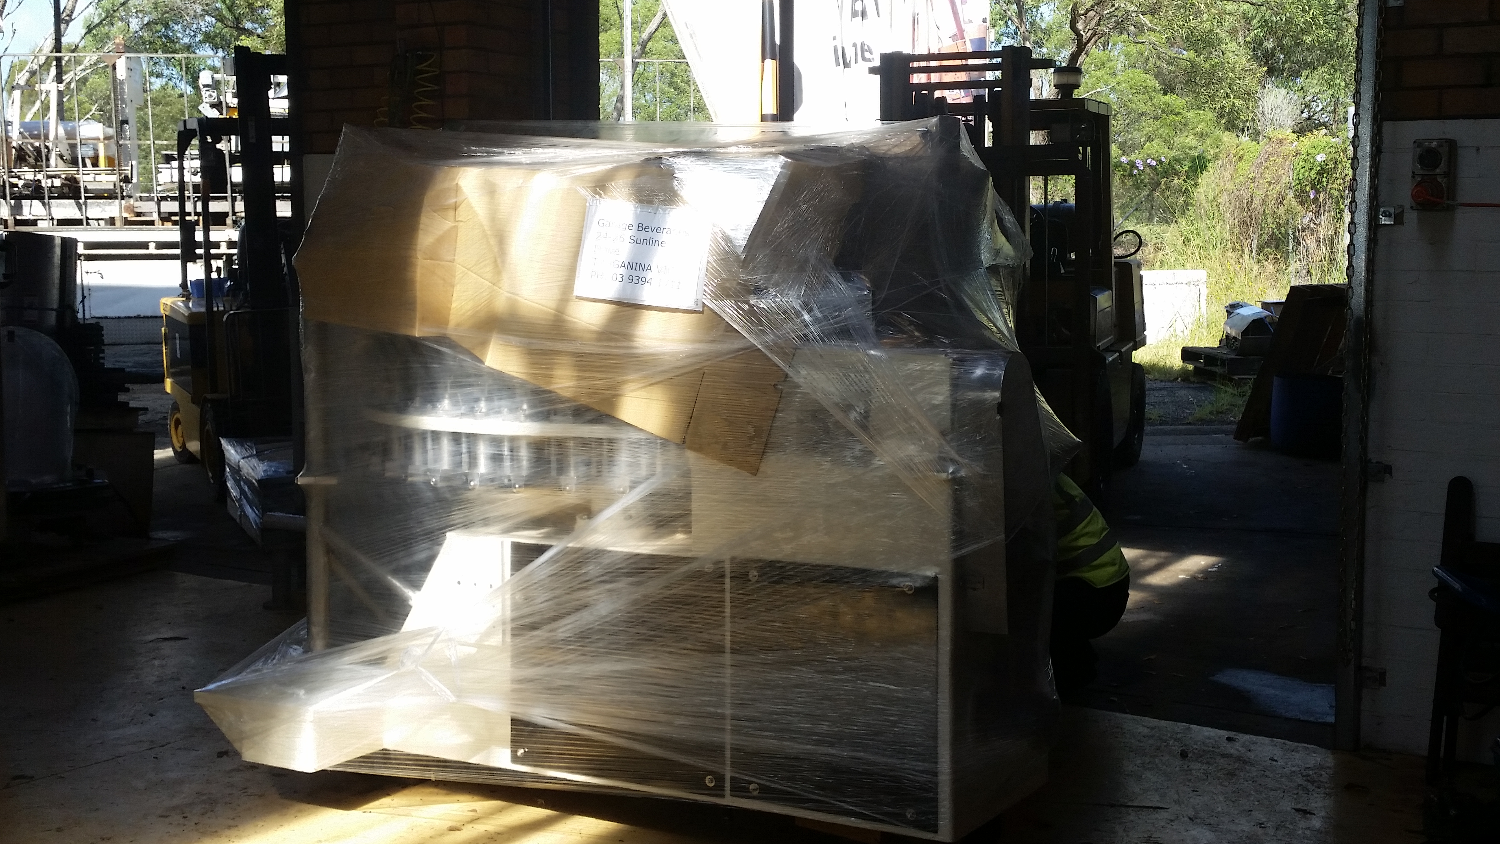 Meyer being shipped out to customer.